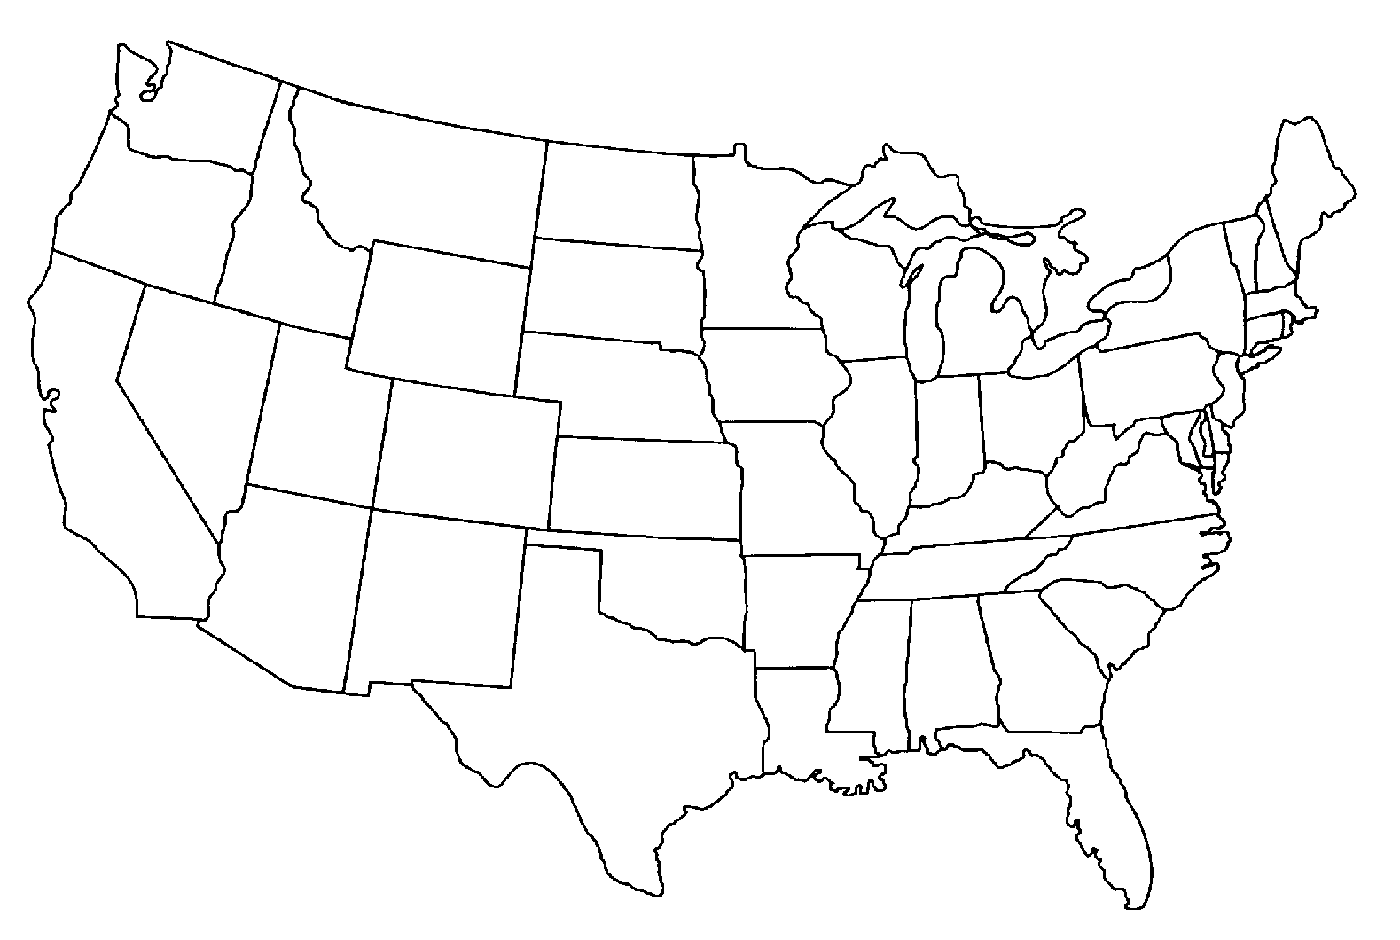 United States Of America Map Outline.Png Usa Outline Transparent Usa Outline Png Images Pluspng